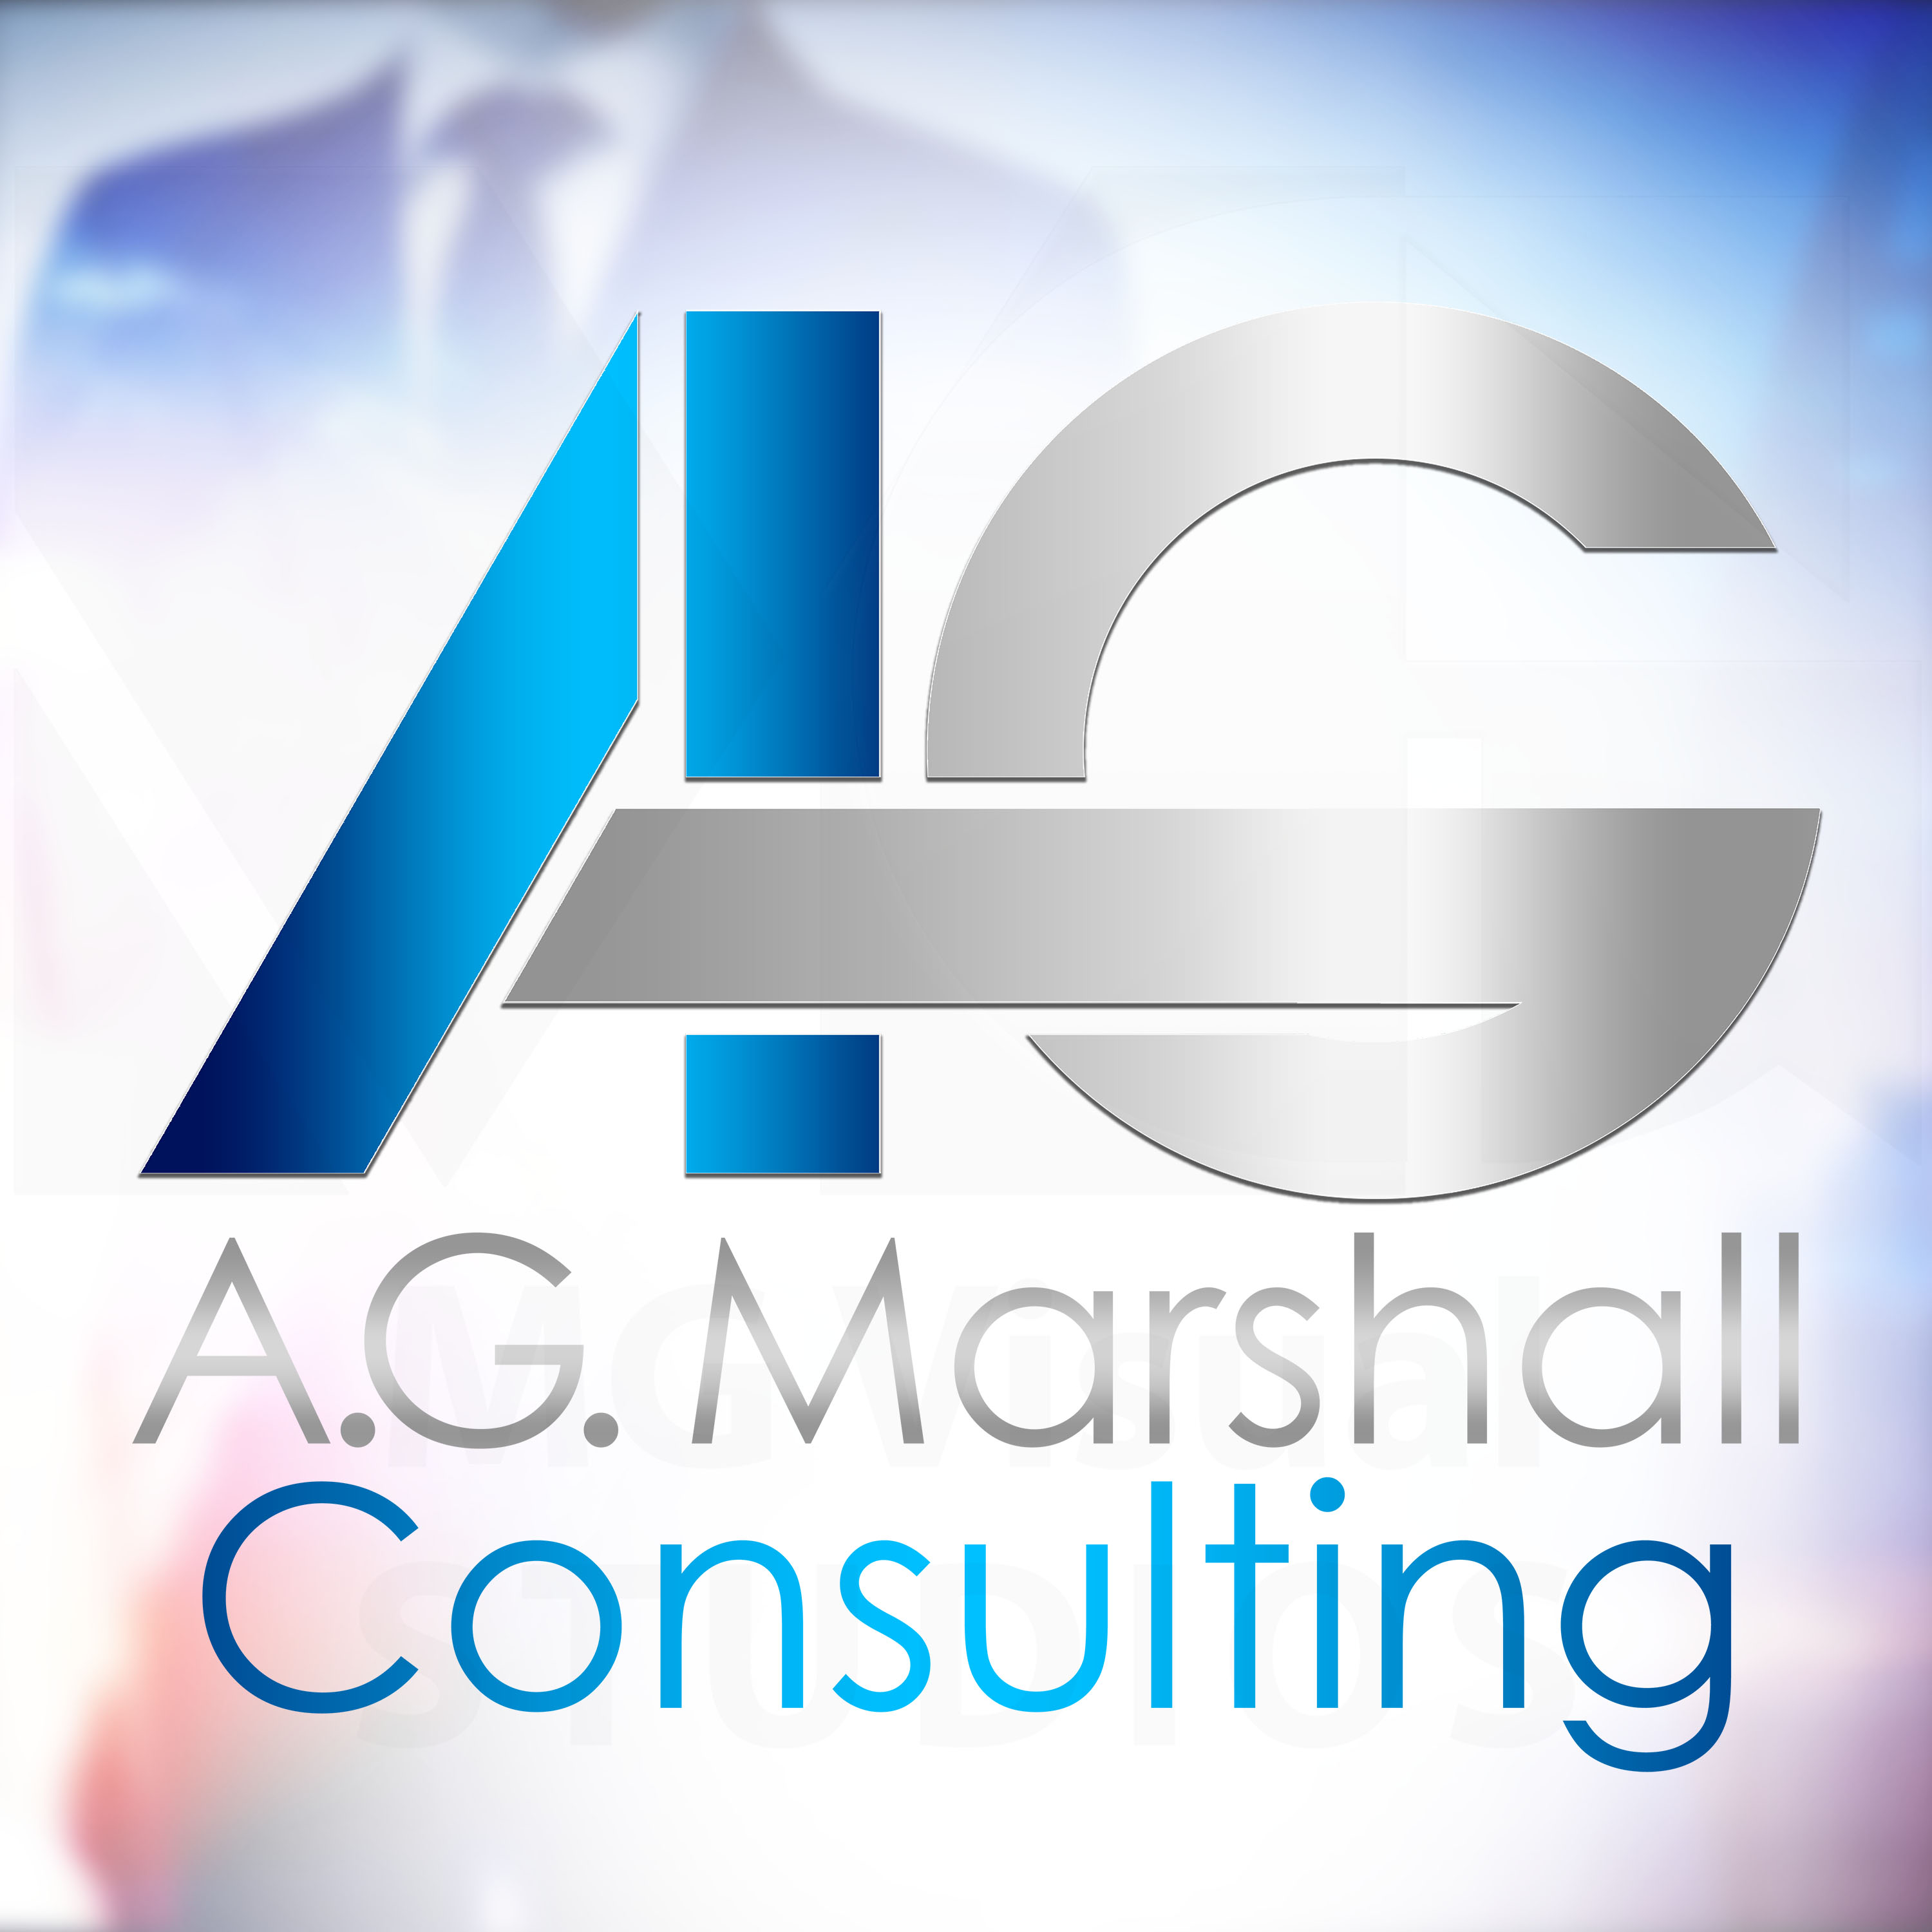 A.G. Marshall Consulting Logo